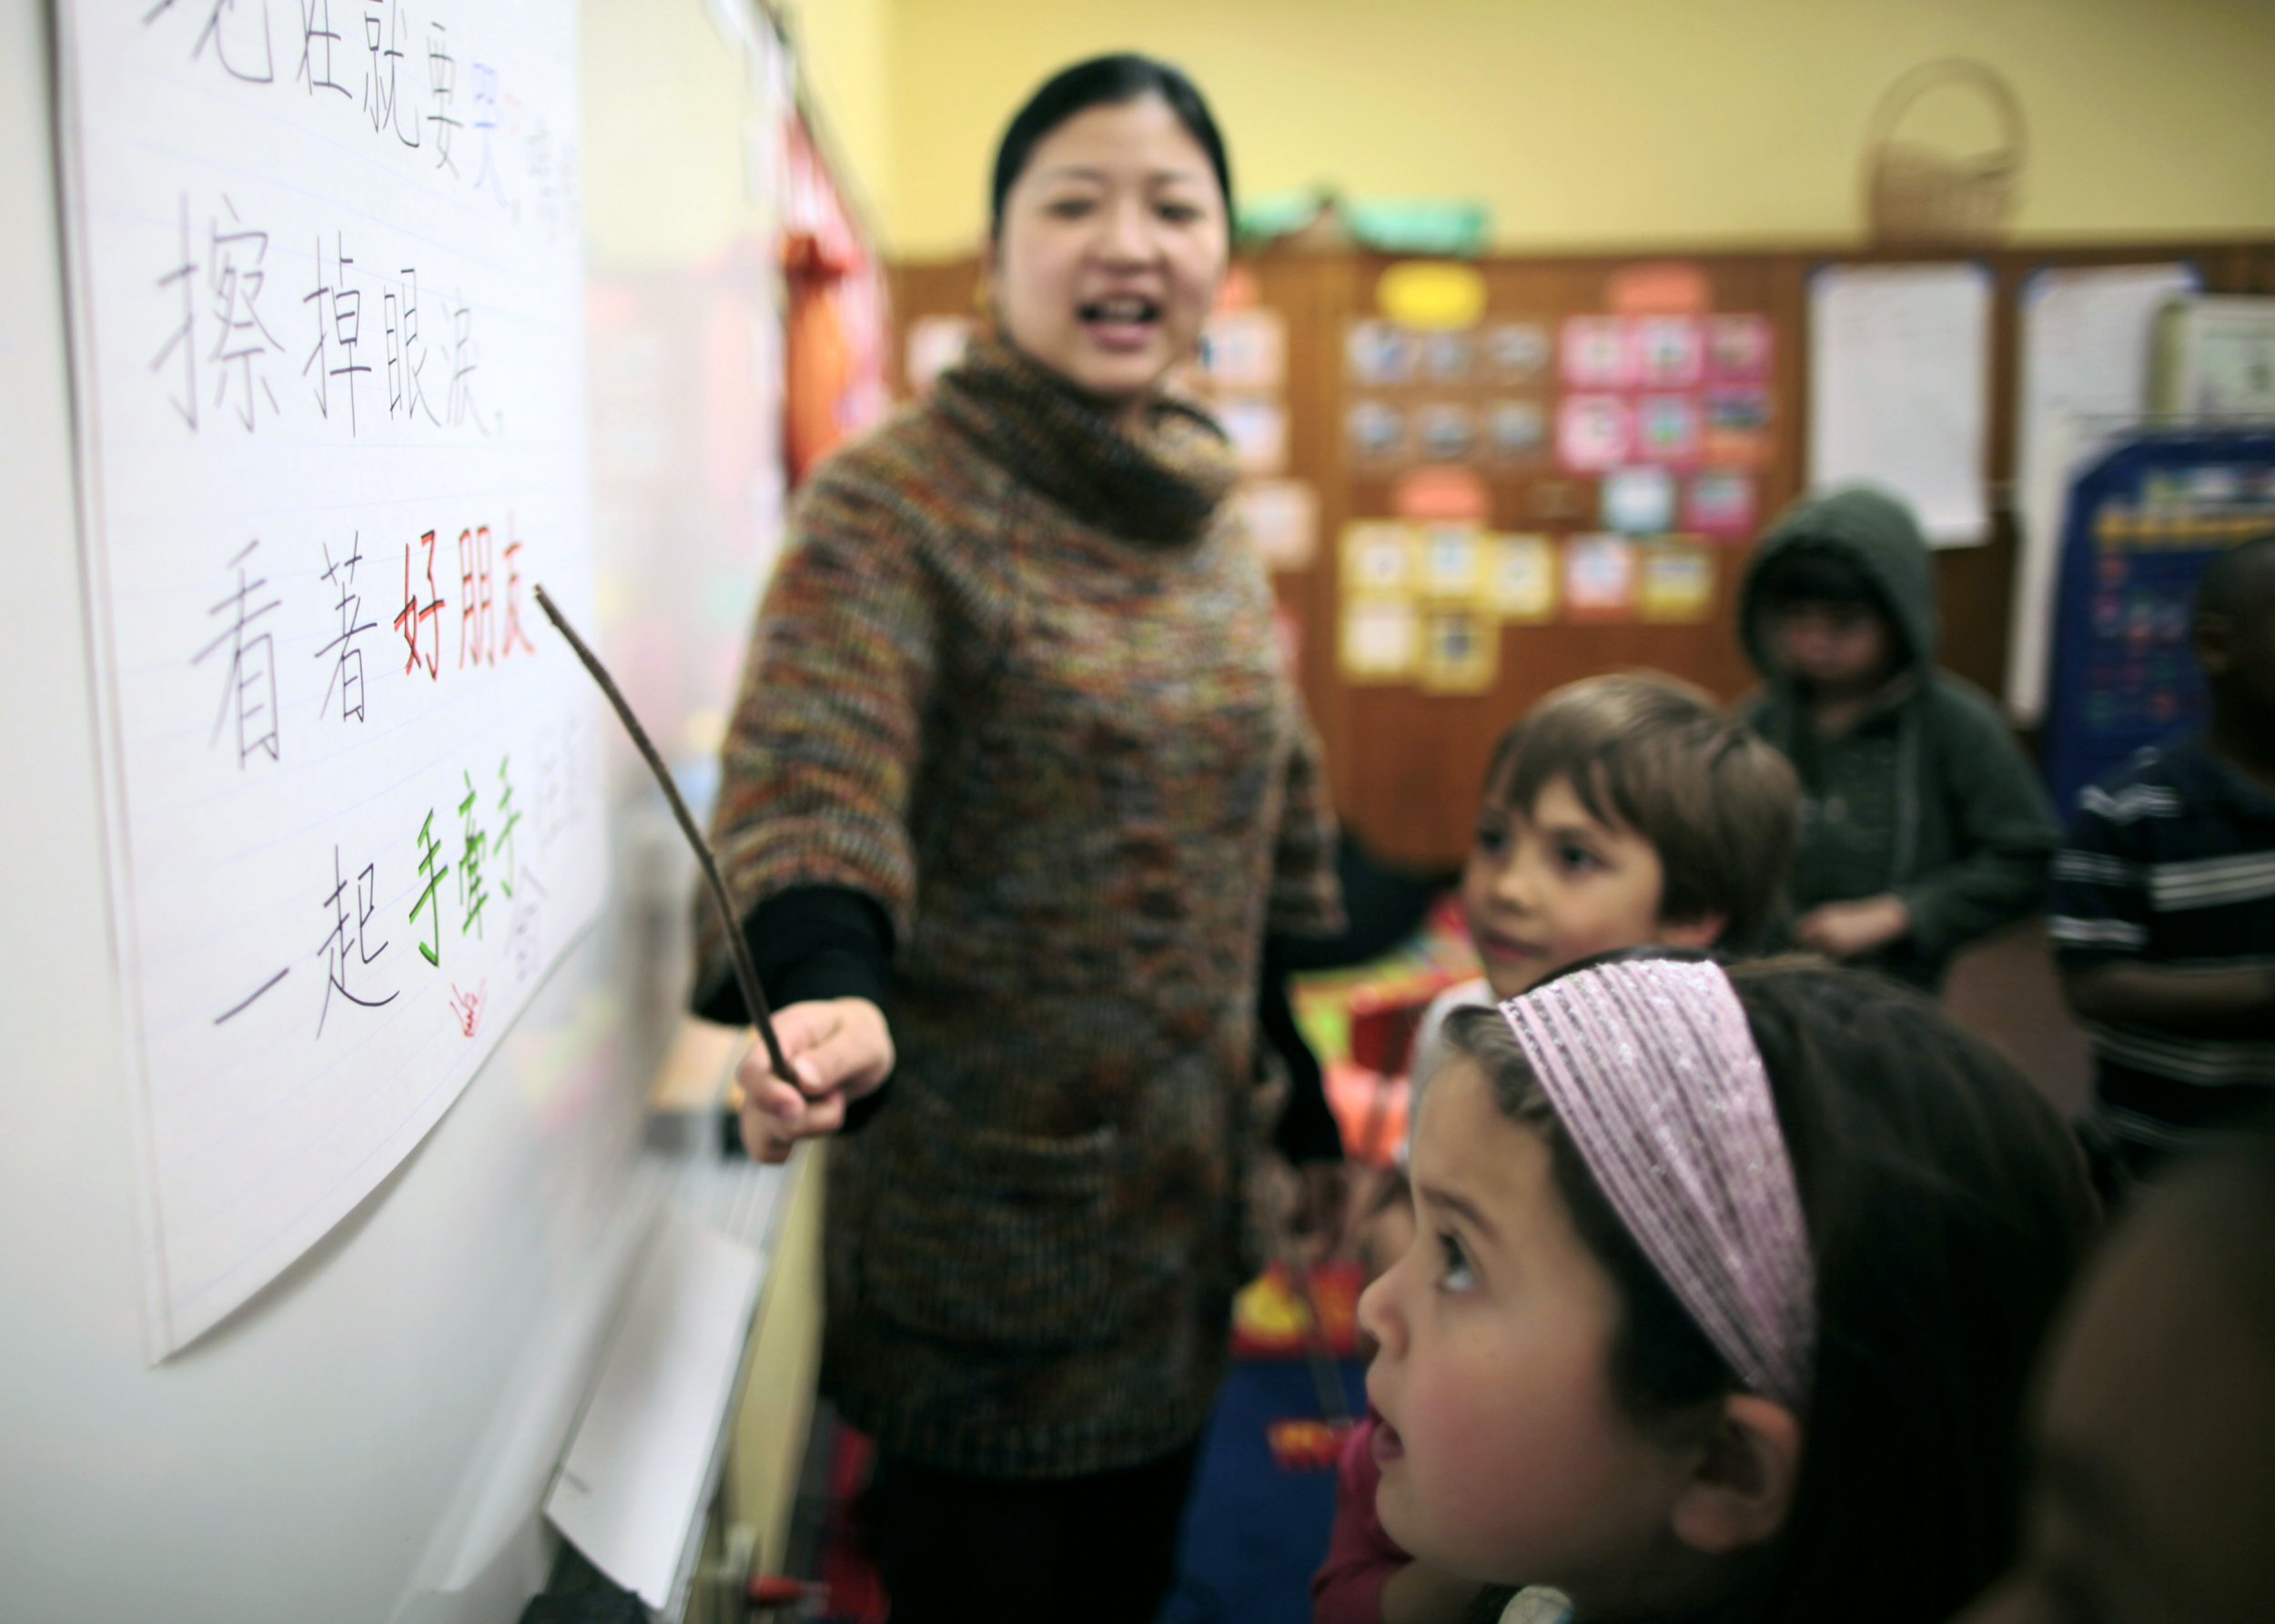 Chinese language instruction